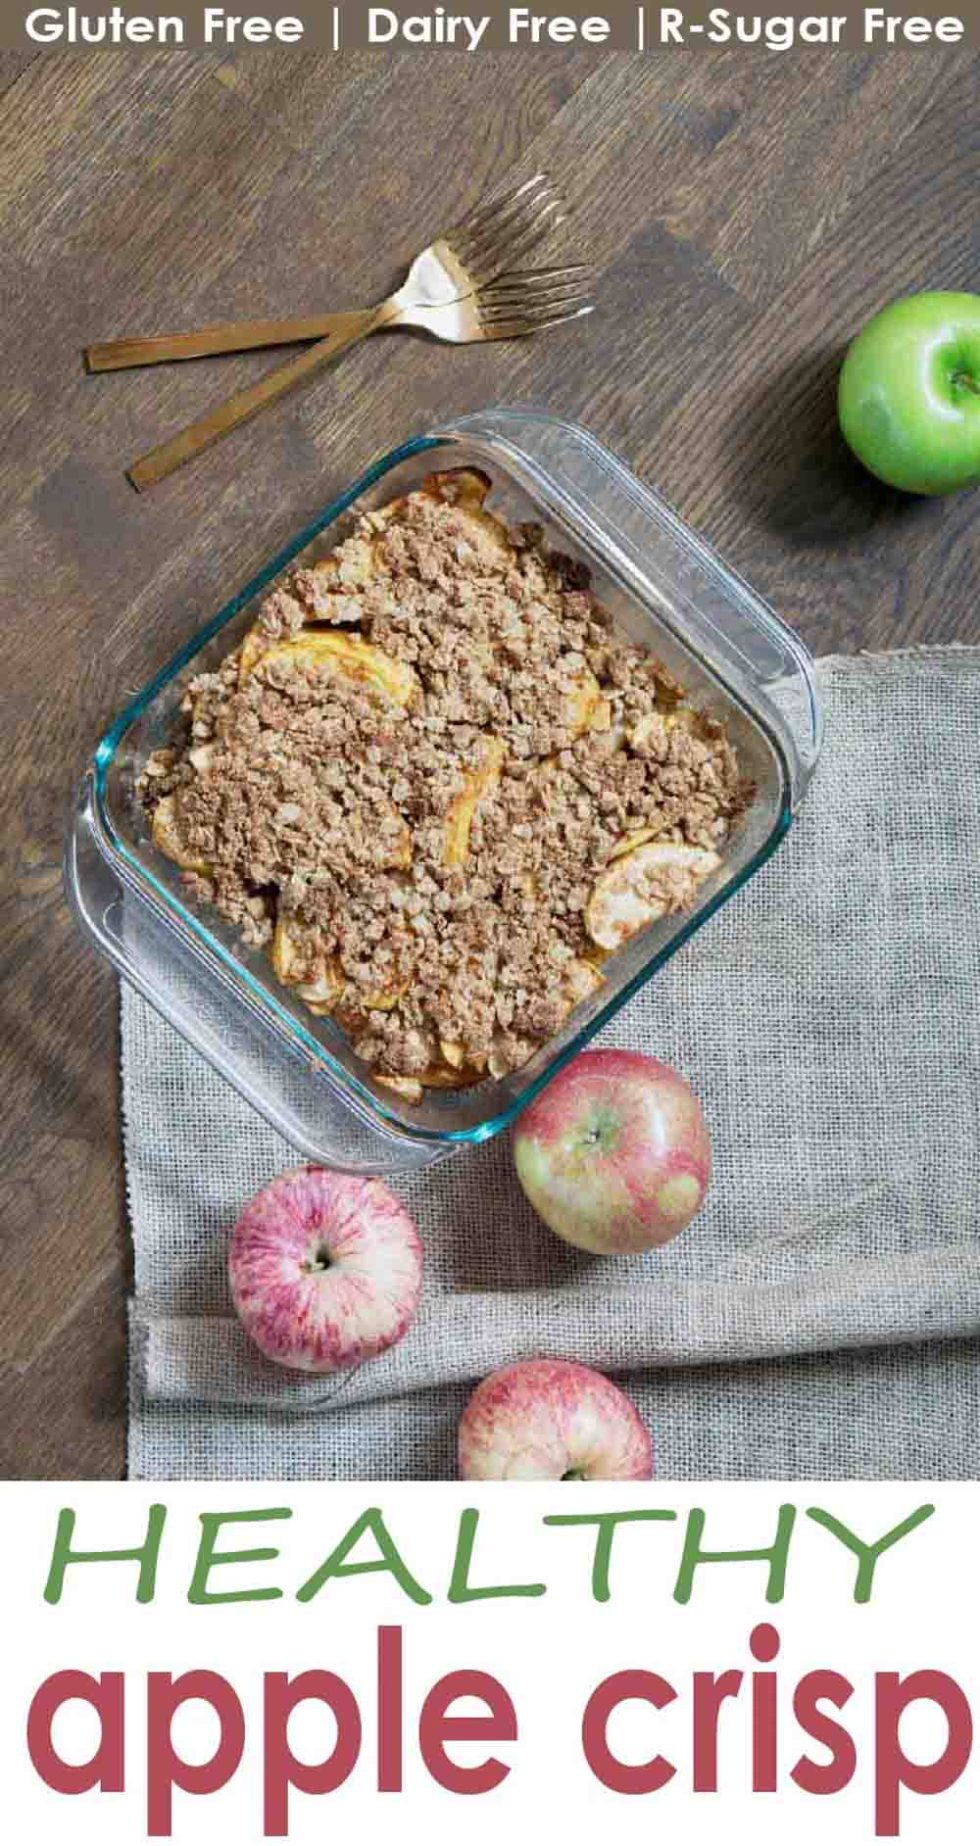 A healthy twist on a classic dessert: this gluten free apple crisp is made from nutritious real foods and nationally sweetened, perfect for health-conscience, dairy free, sugar free or vegan friends!